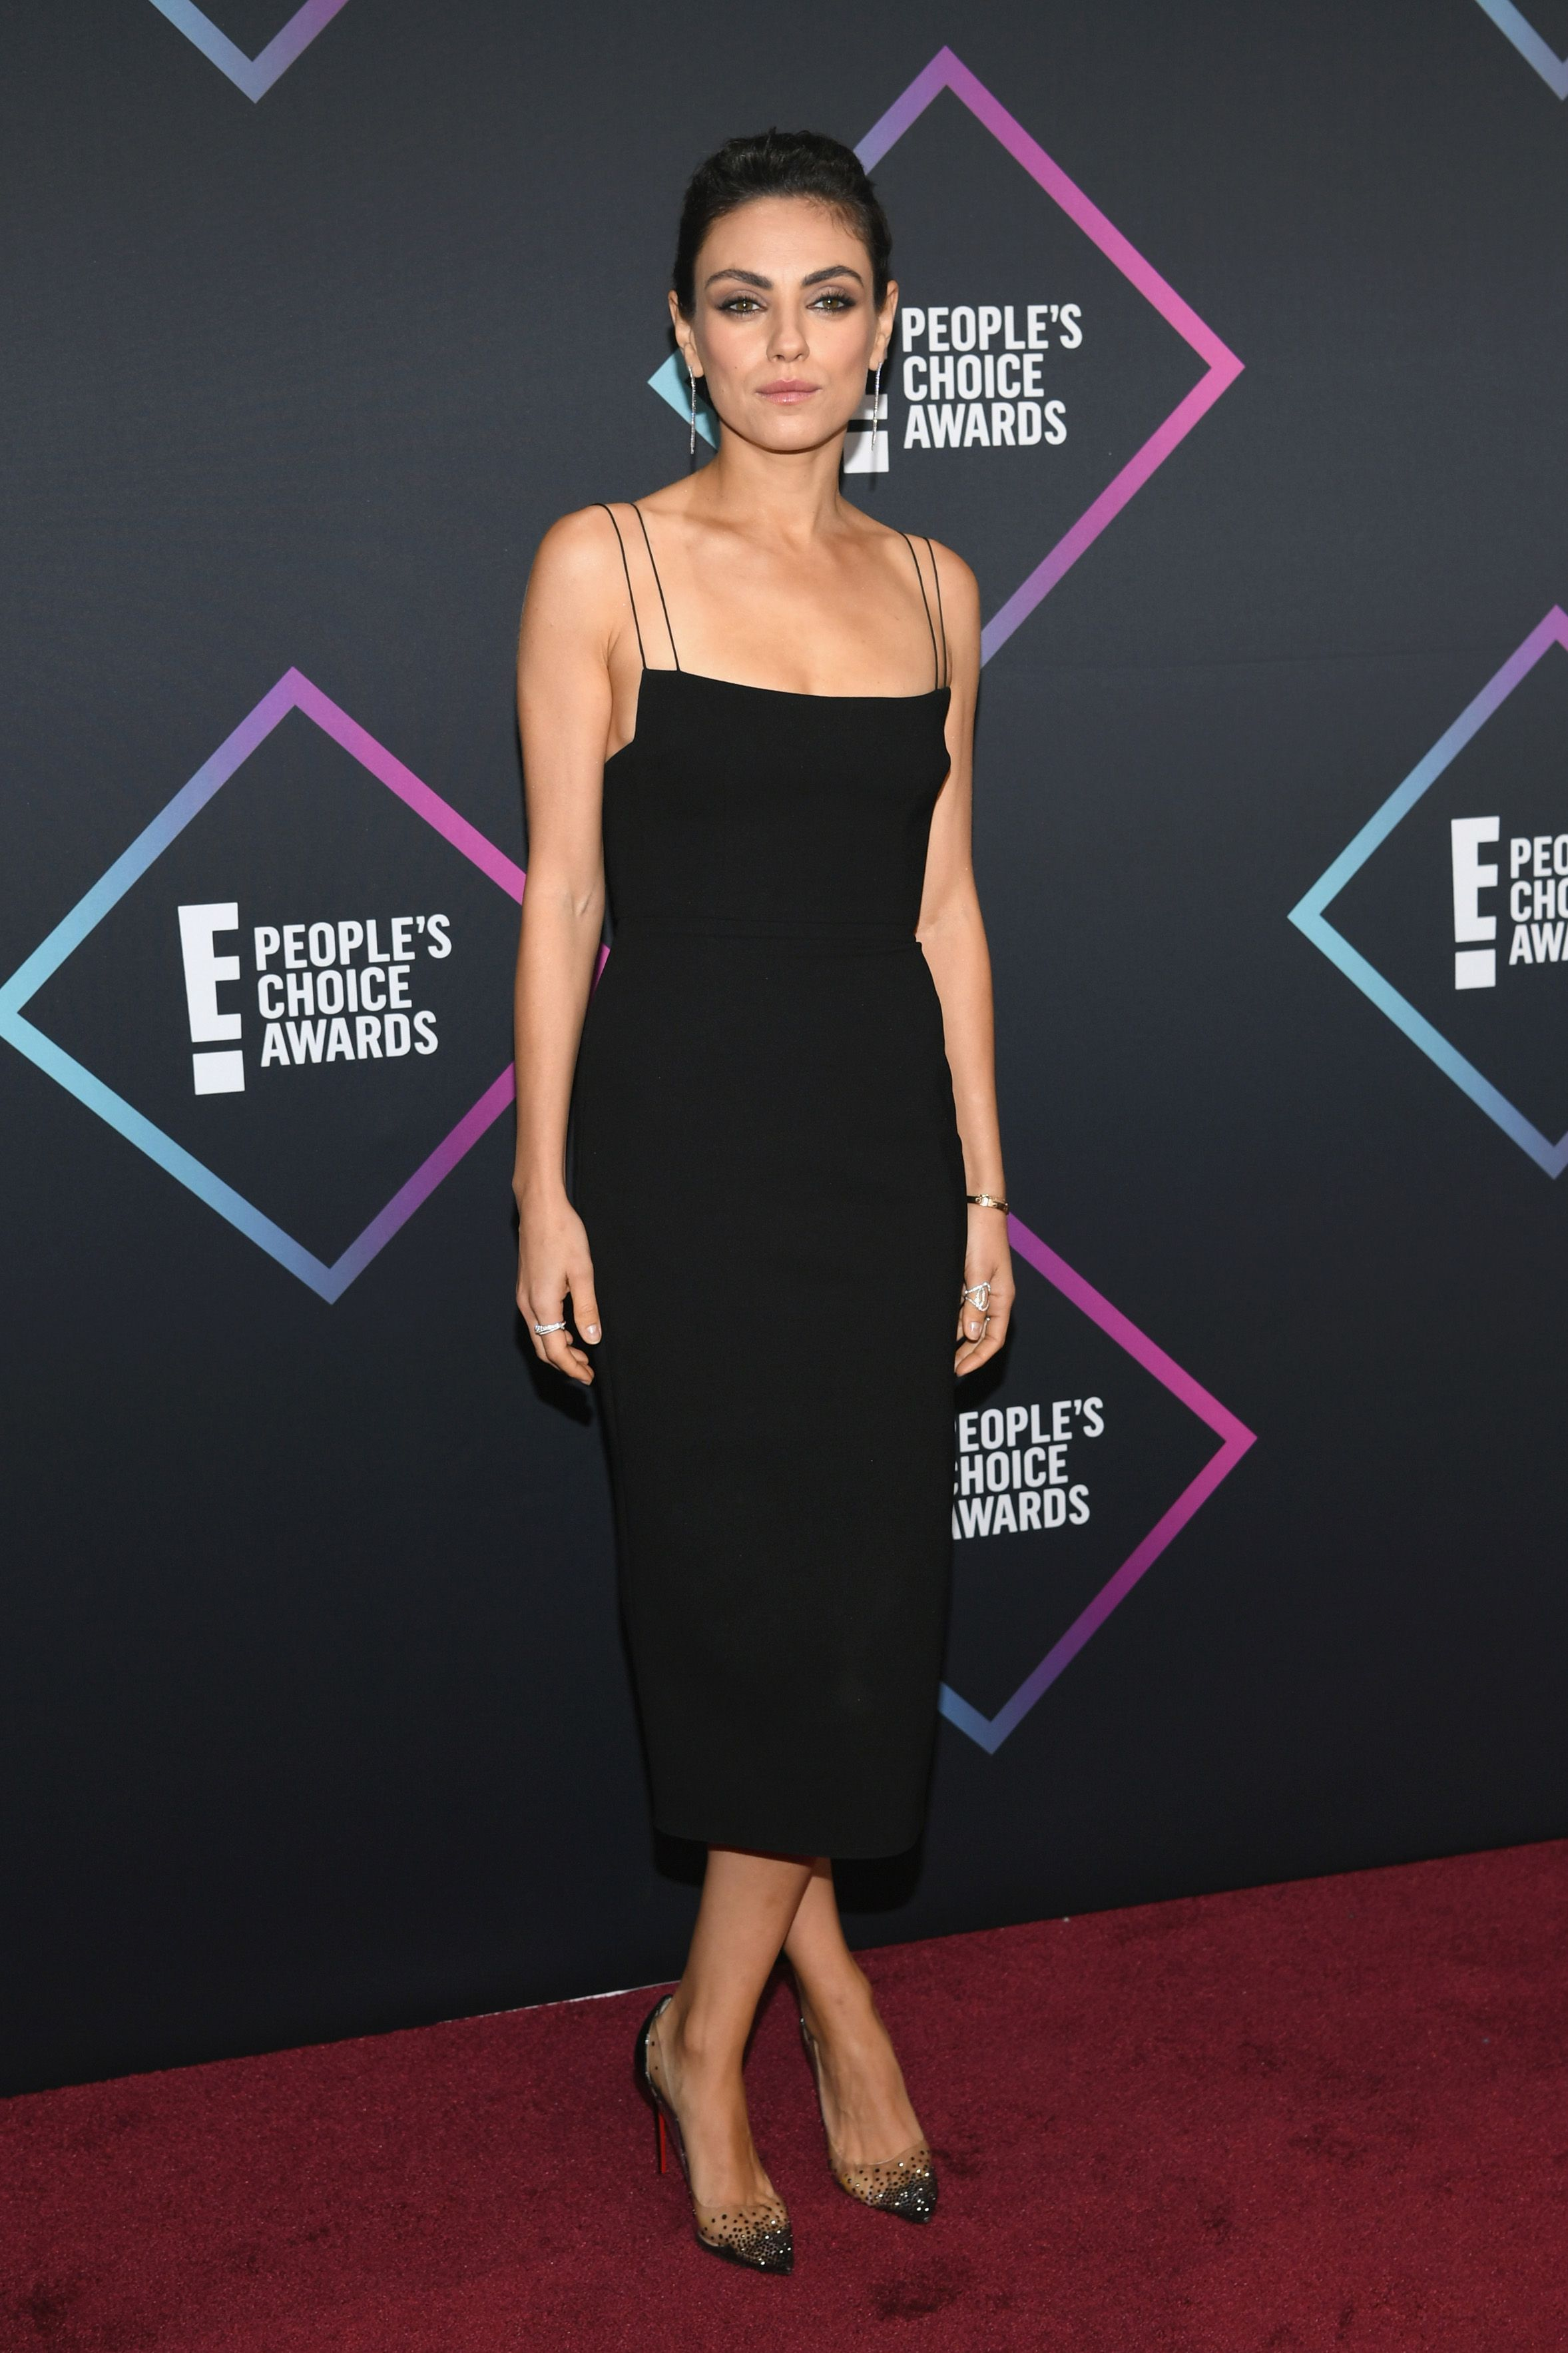 2018 E! People's Choice Awards - Arrivals